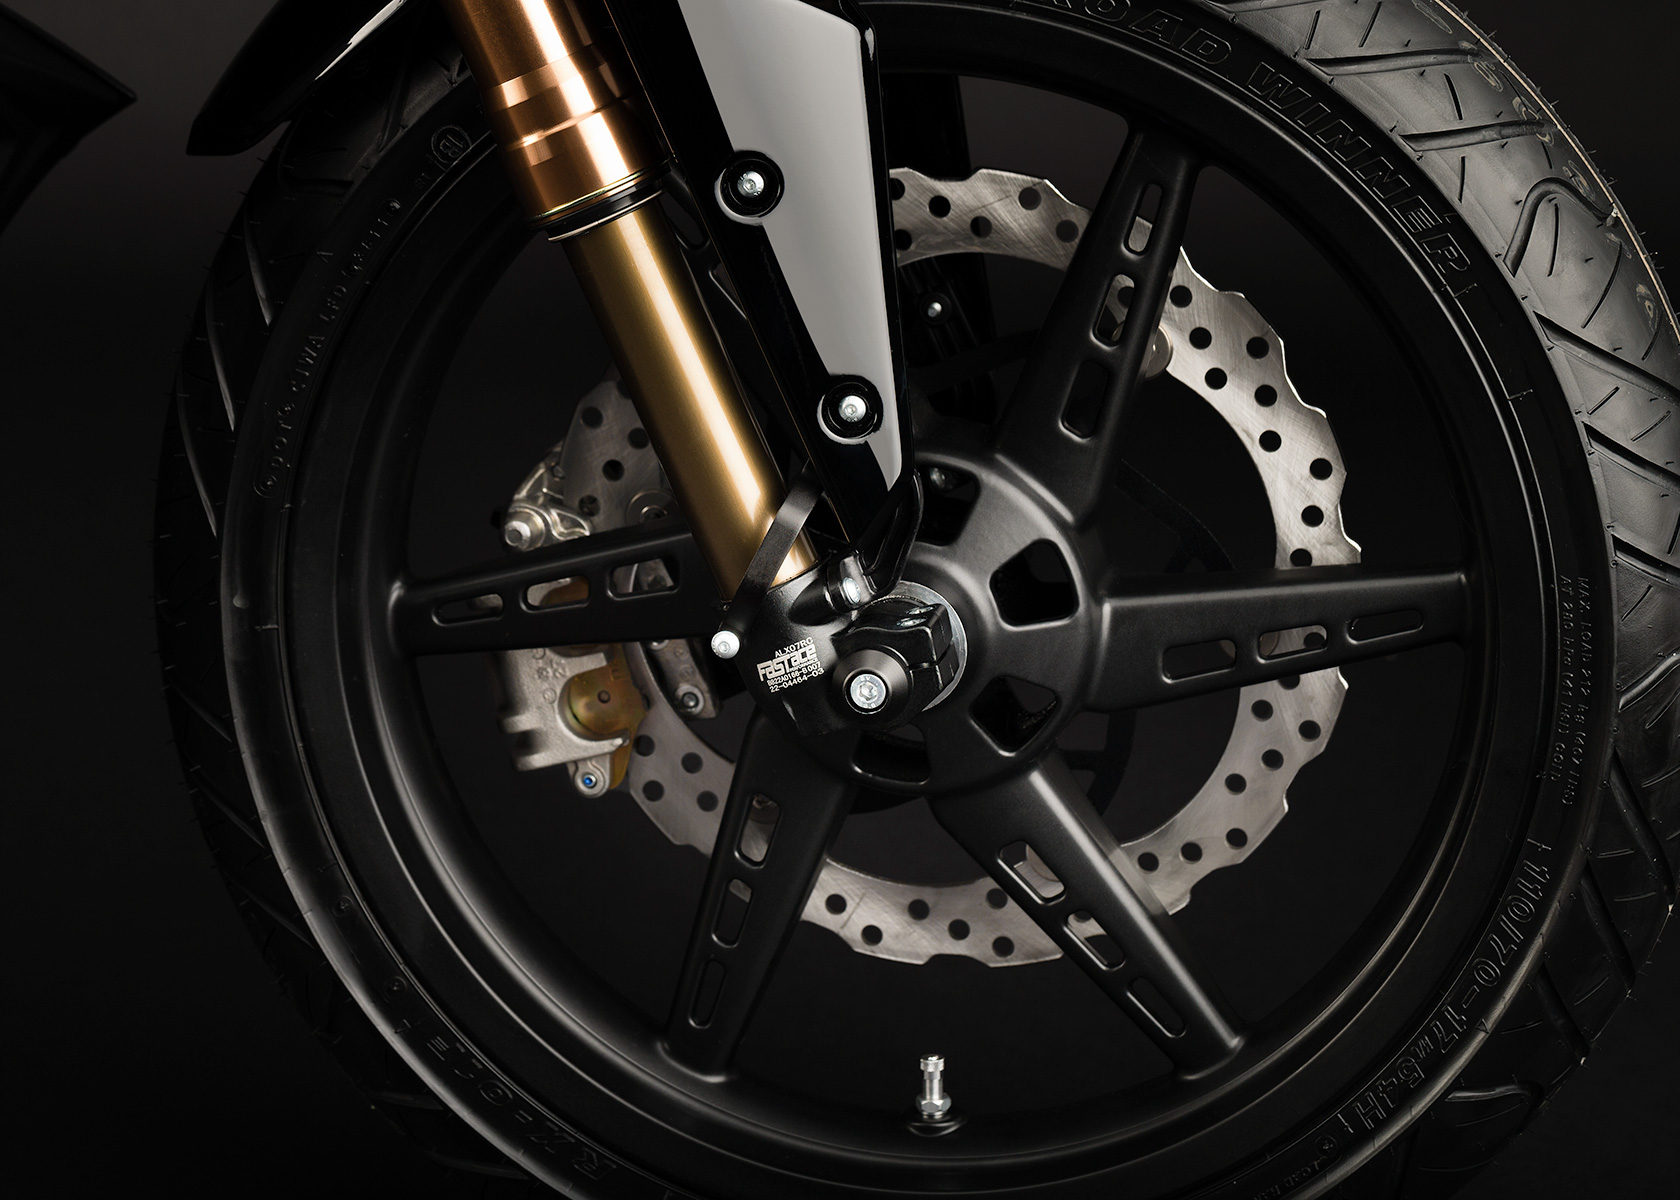 '.2013 Zero S Electric Motorcycle: Wheel.'